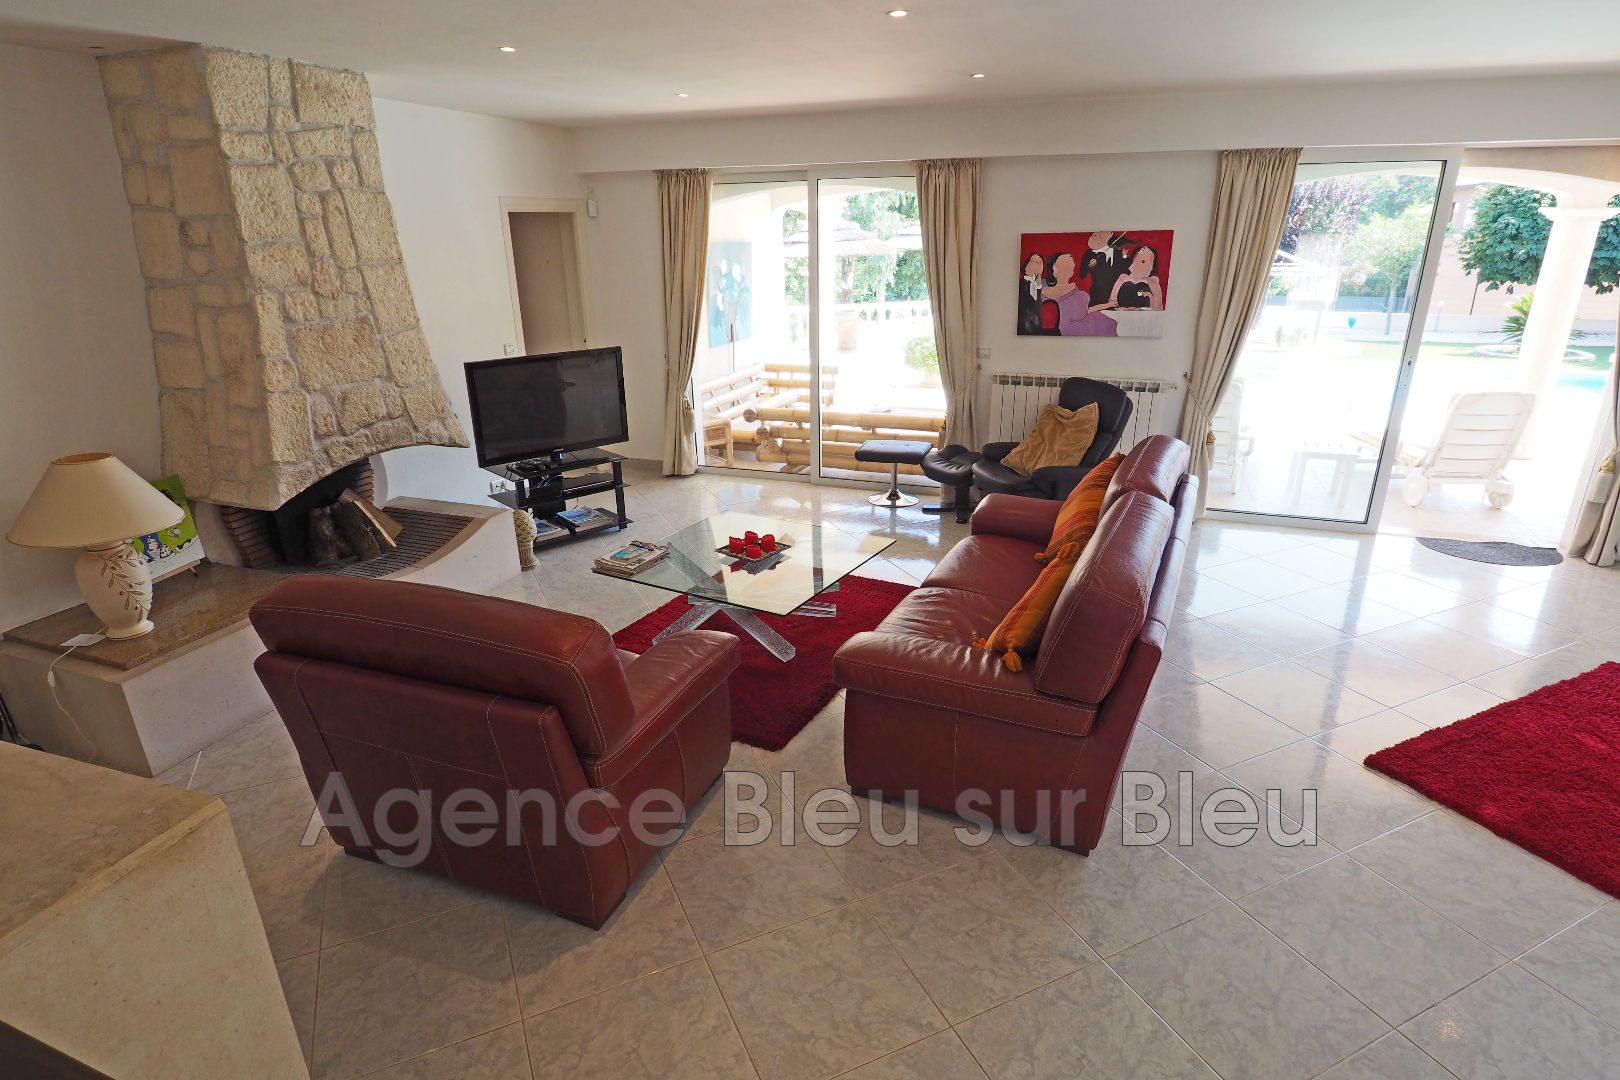 Maison antibes les groules achat maison 3 chambres 155 m for Achat chambre complete adulte